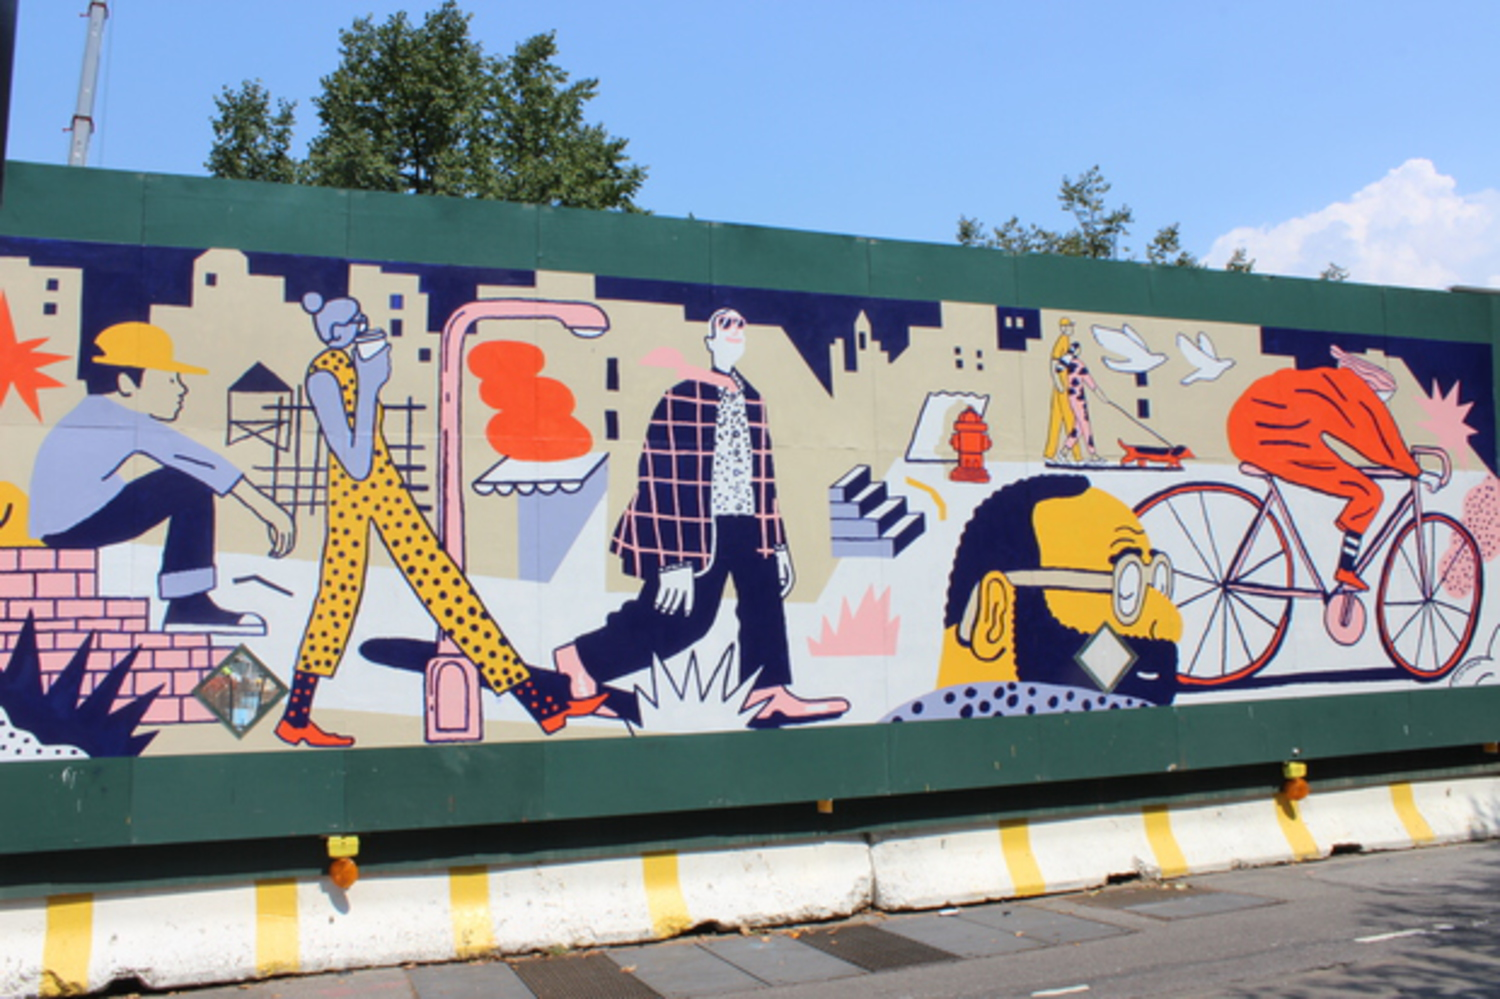 This mural at the corner of Dean Street and Carlton Avenue was painted by Josh Cochran.